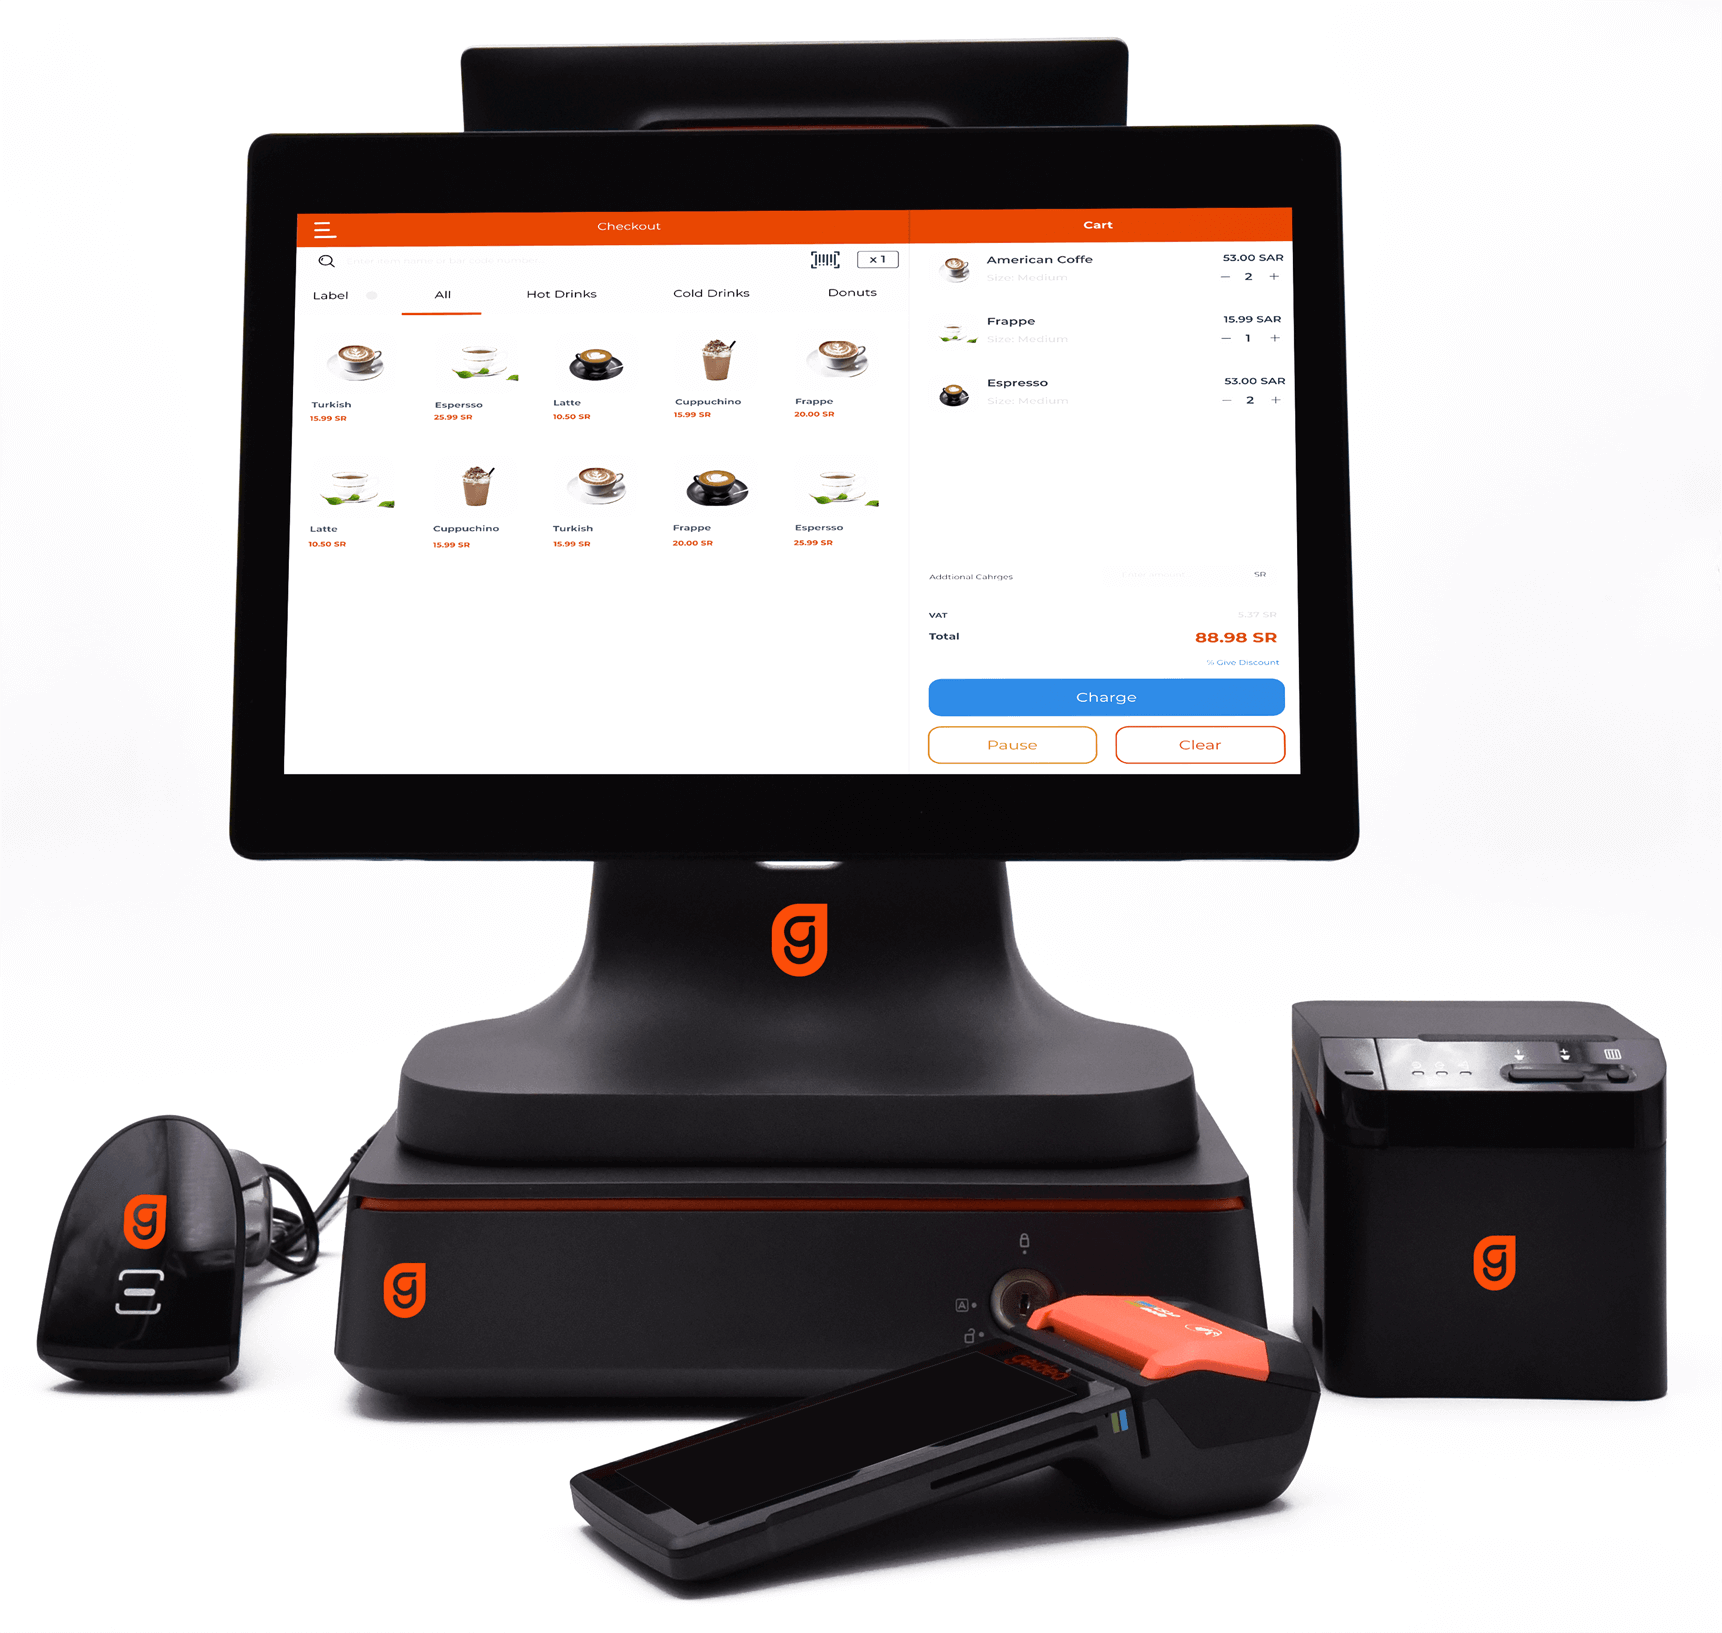 pos device for retails